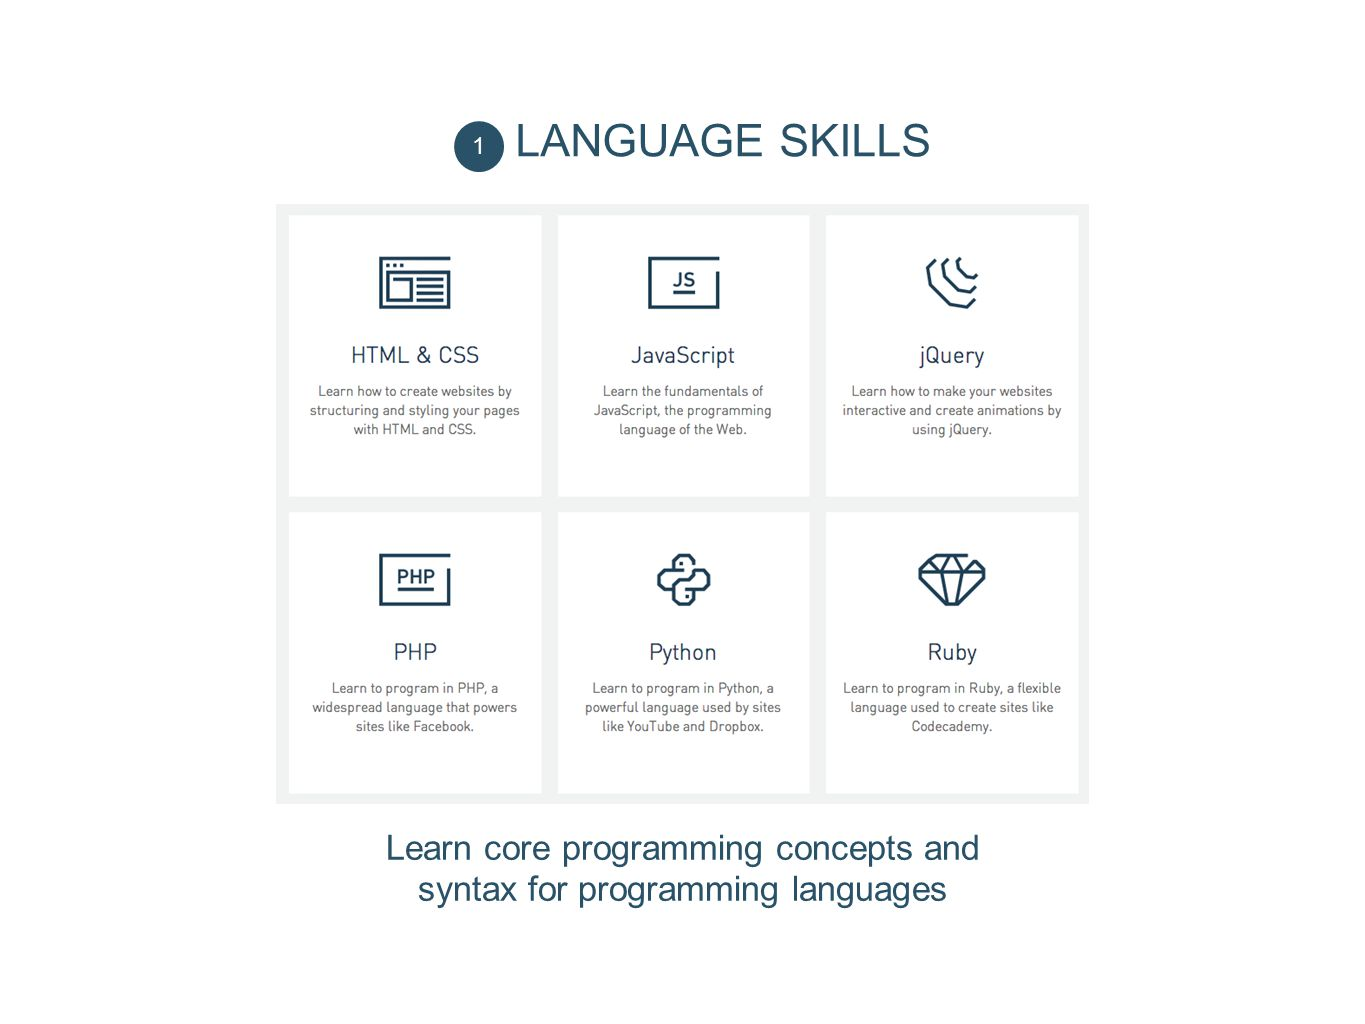 Learn core programming concepts and syntax for programming languages